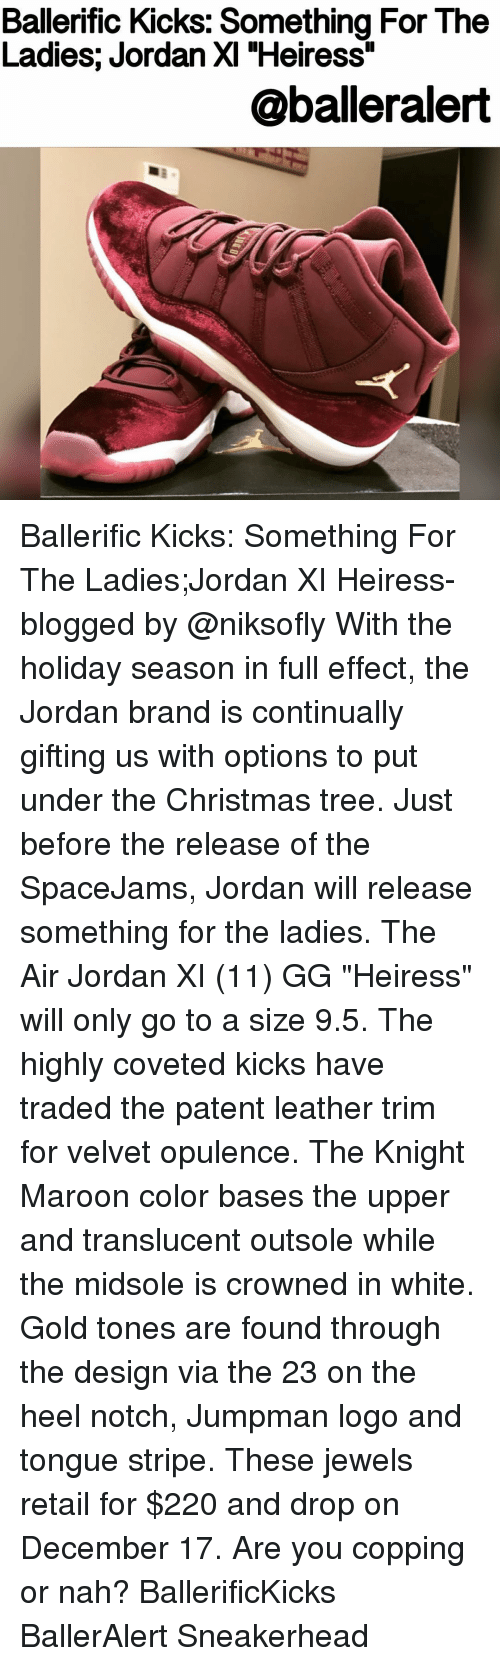 "Air Jordan, Gg, and Jordans: Ballerific Kicks: Something For The  Ladies; Jordan XI ""Heiress""  aballeralert Ballerific Kicks: Something For The Ladies;Jordan XI Heiress- blogged by @niksofly With the holiday season in full effect, the Jordan brand is continually gifting us with options to put under the Christmas tree. Just before the release of the SpaceJams, Jordan will release something for the ladies. The Air Jordan XI (11) GG ""Heiress"" will only go to a size 9.5. The highly coveted kicks have traded the patent leather trim for velvet opulence. The Knight Maroon color bases the upper and translucent outsole while the midsole is crowned in white. Gold tones are found through the design via the 23 on the heel notch, Jumpman logo and tongue stripe. These jewels retail for $220 and drop on December 17. Are you copping or nah? BallerificKicks BallerAlert Sneakerhead"